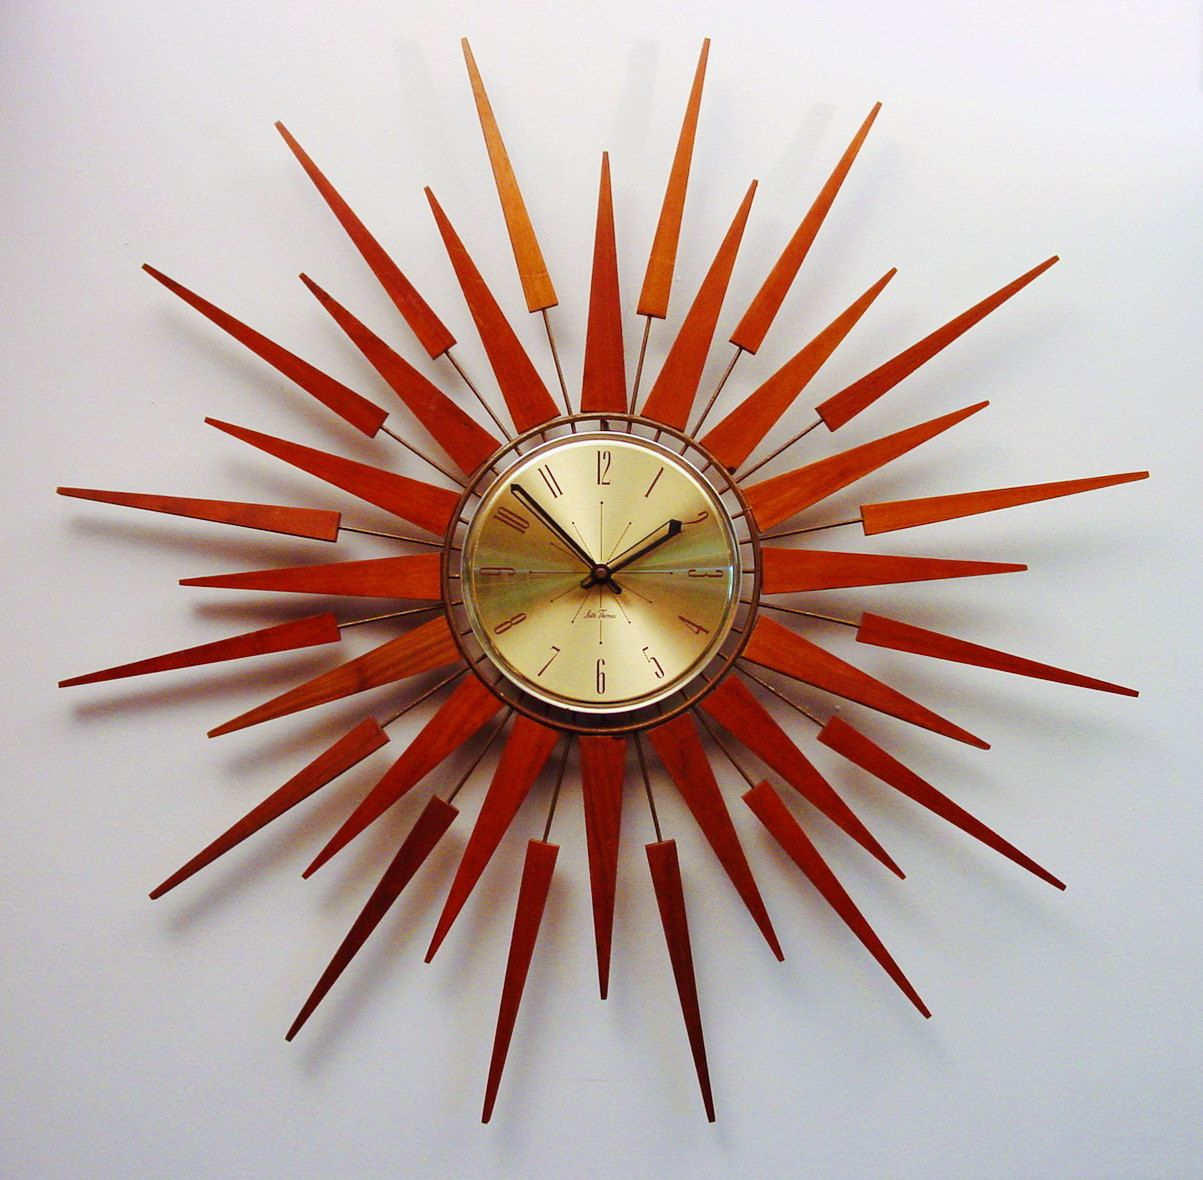 midcentury modern starburst wall clock by seth thomas s  - midcentury modern starburst wall clock by seth thomas s